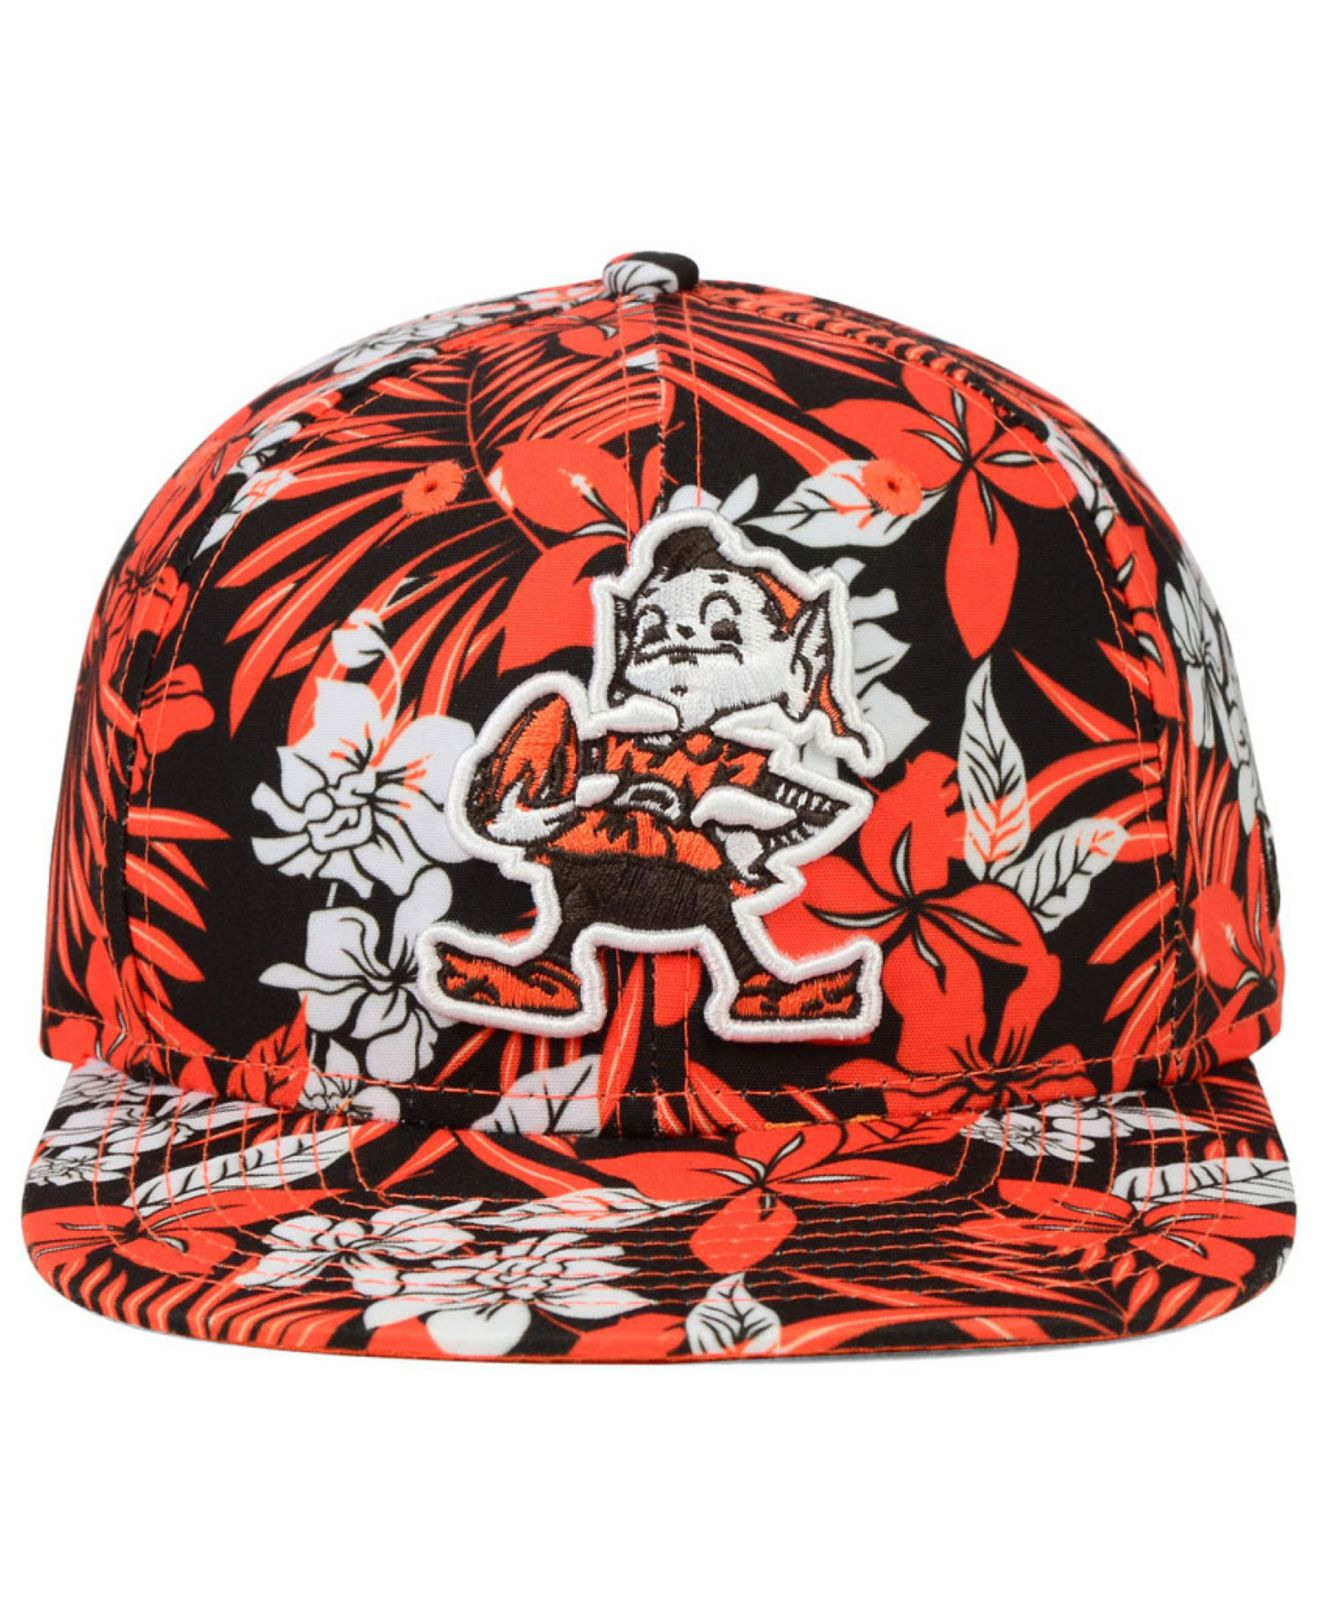 info for 47be1 047b2 Lyst - KTZ Cleveland Browns Wowie 9fifty Snapback Cap in Orange for Men